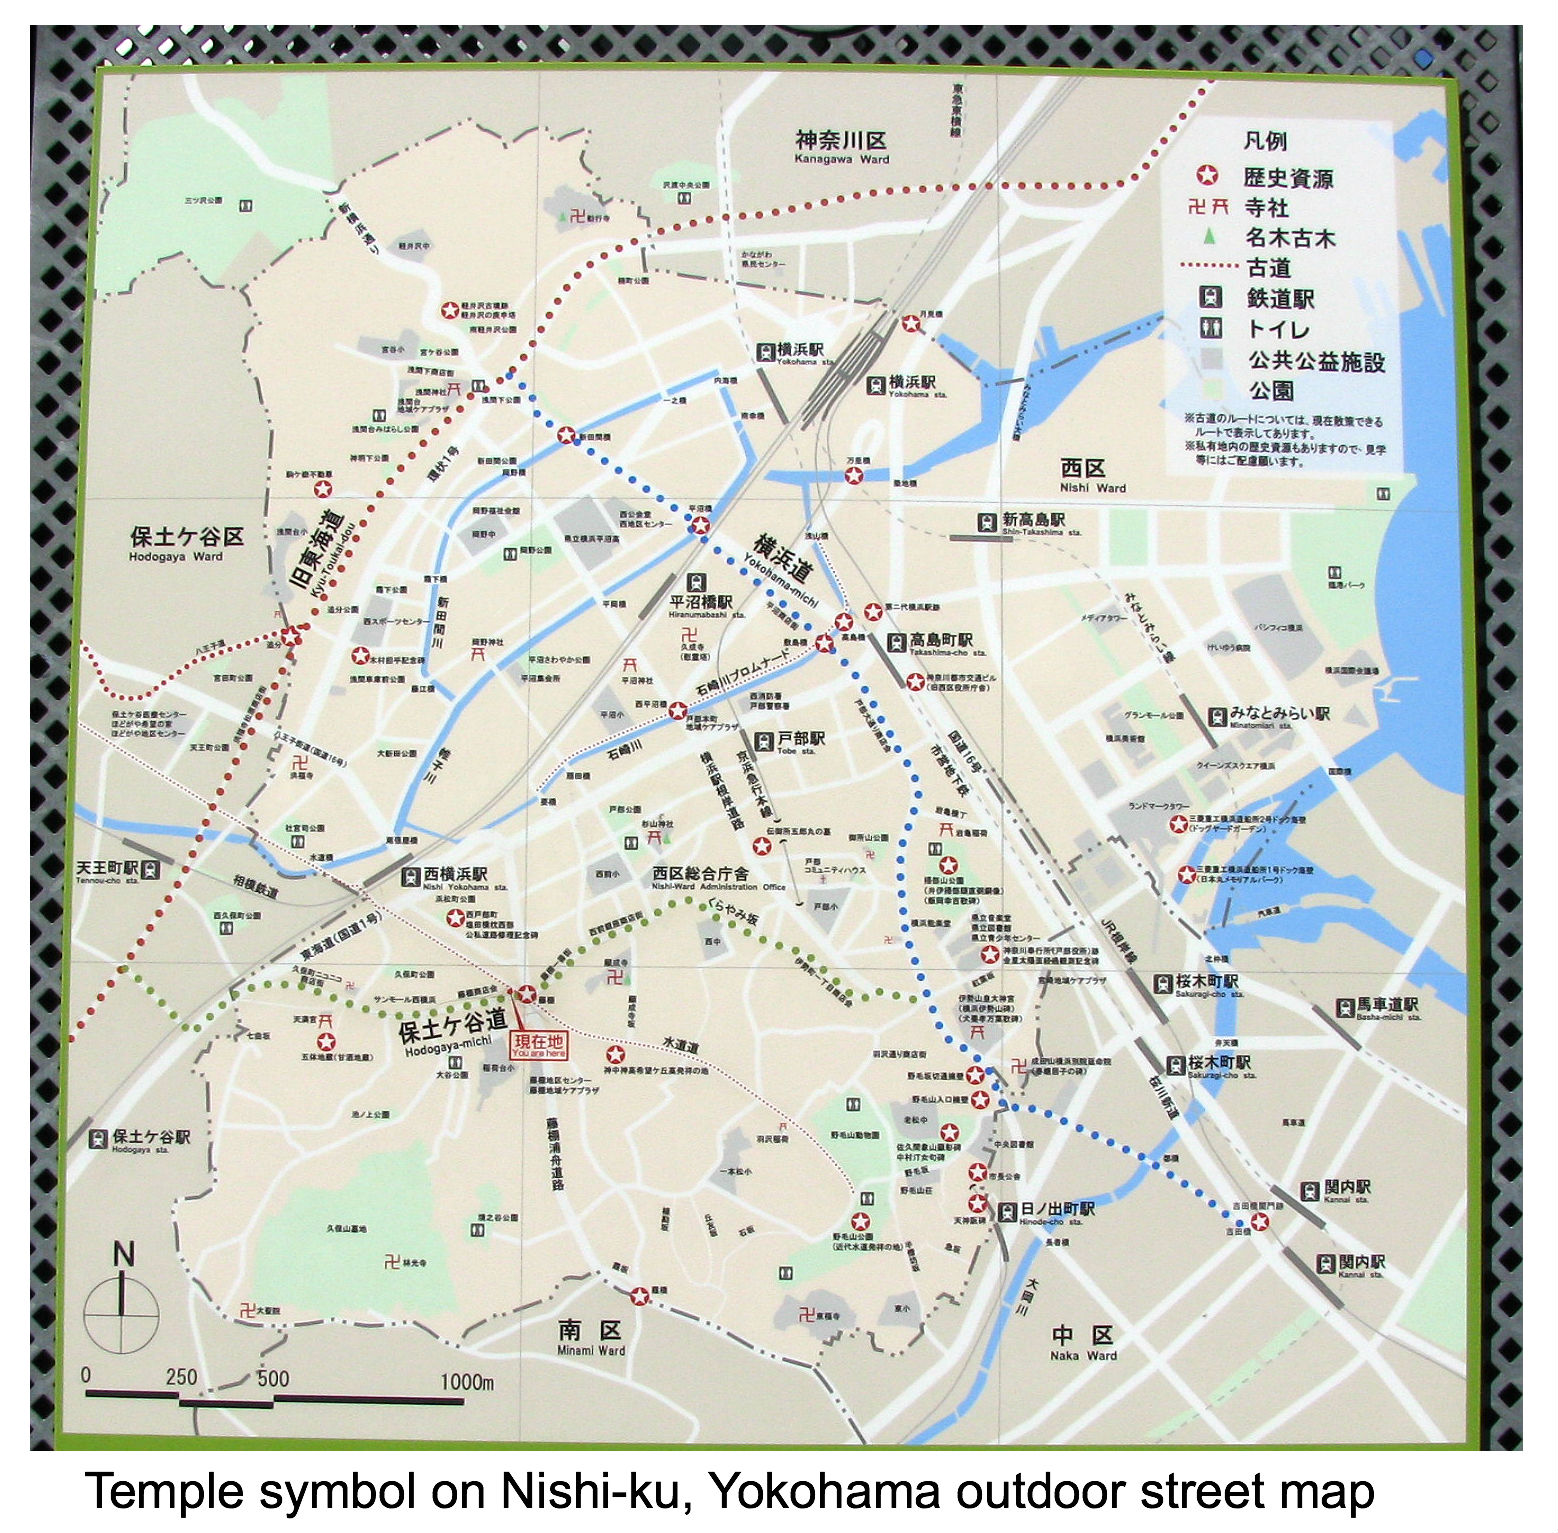 Japanese Manji character resembles swastika symbol on maps in Japan